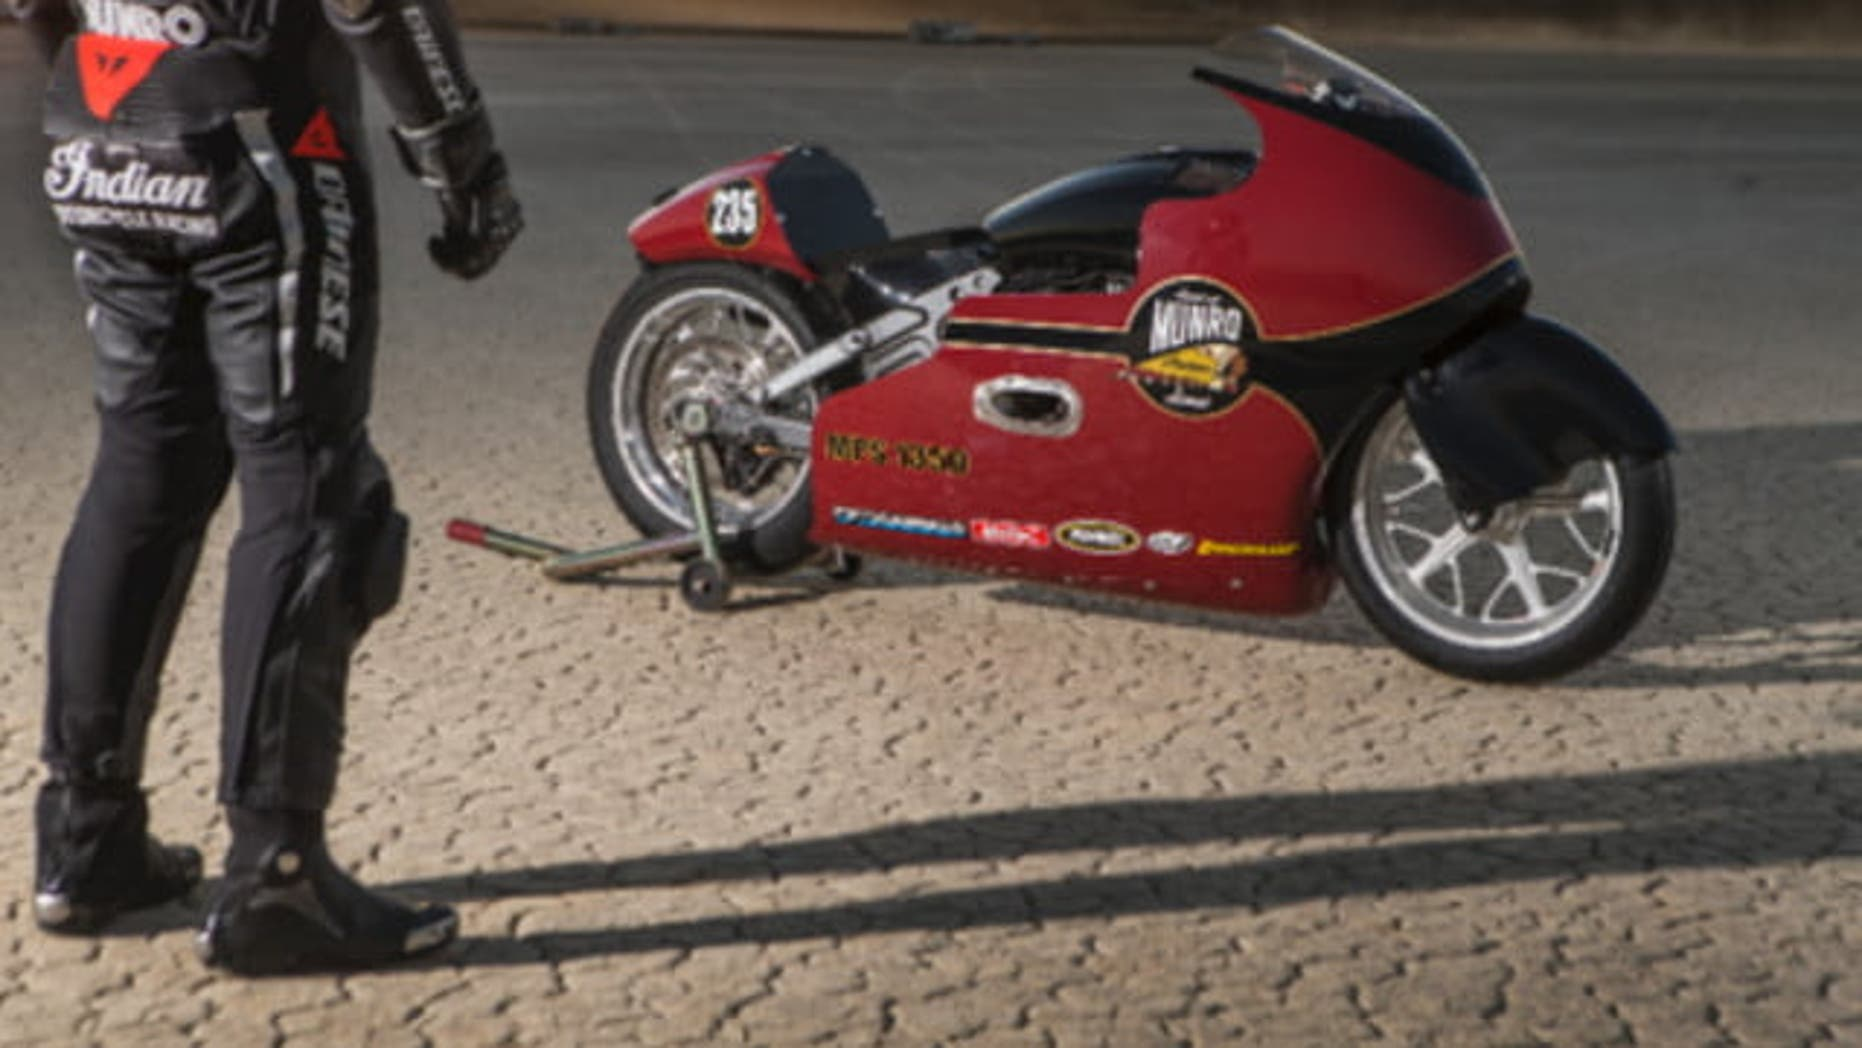 Lee Munro and the 2017 Indian Scout Streamliner